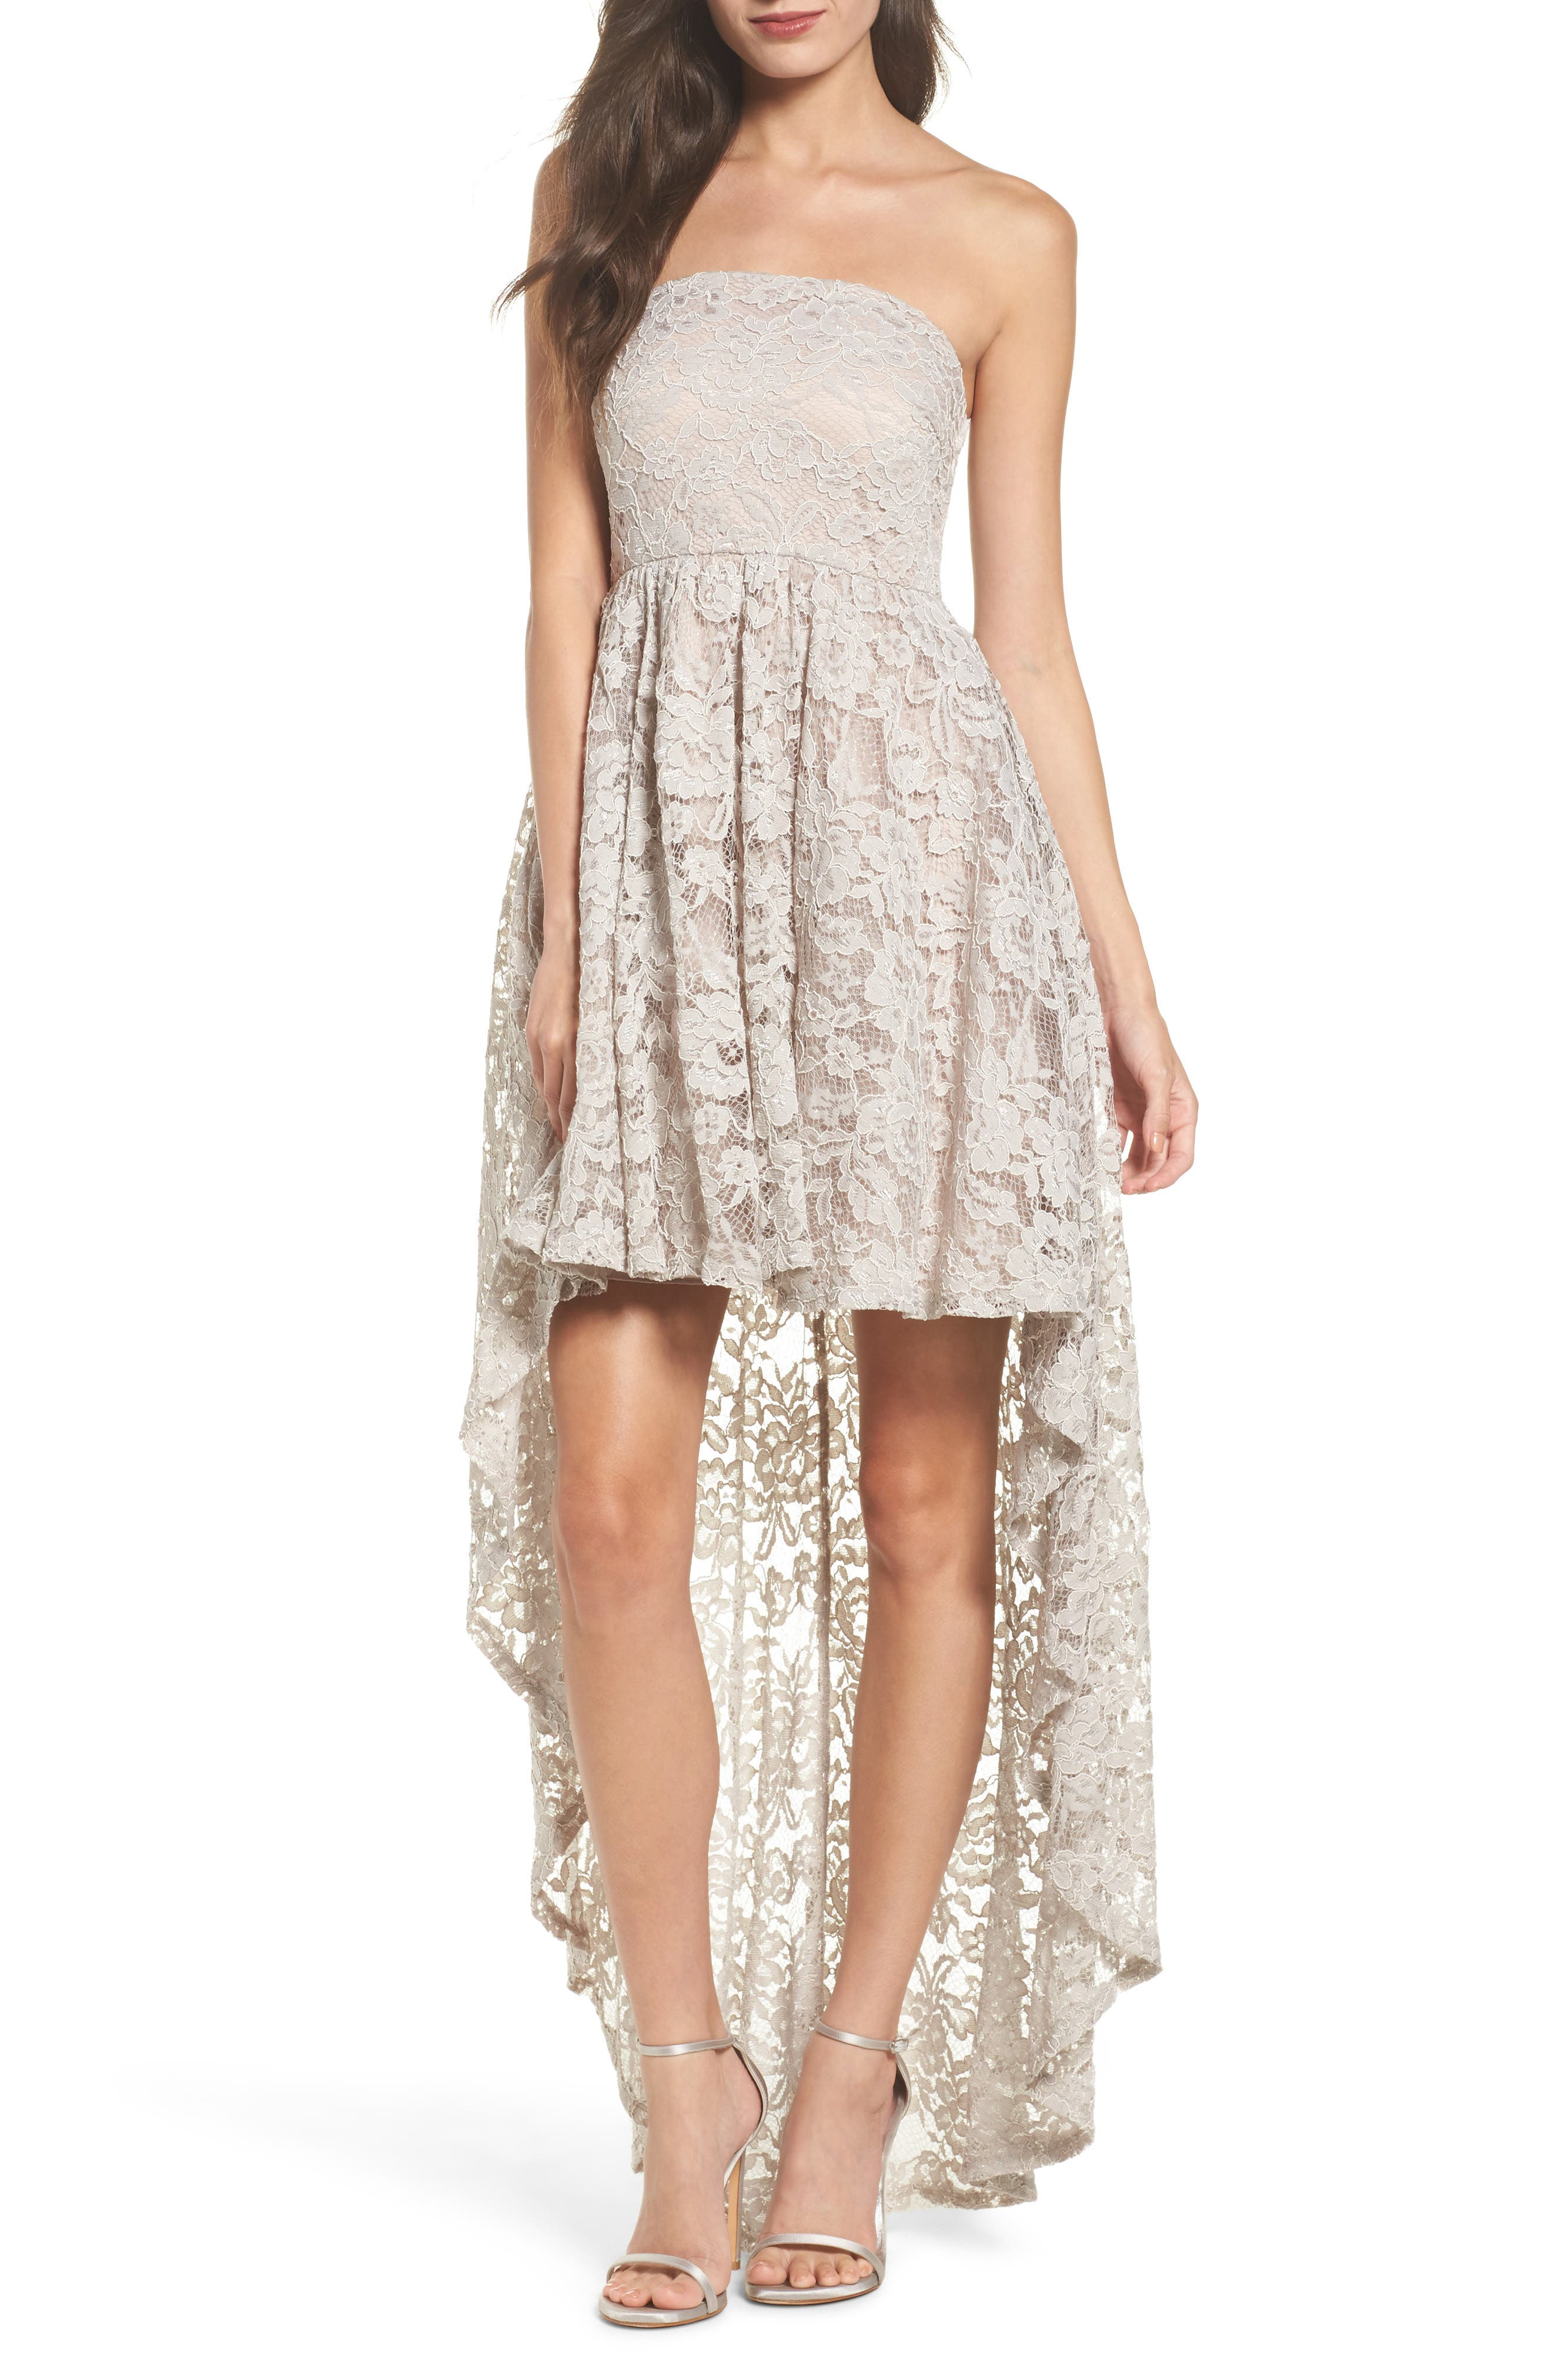 Alternate Image 1 Selected - Sequin Hearts Strapless Lace High/Low Dress